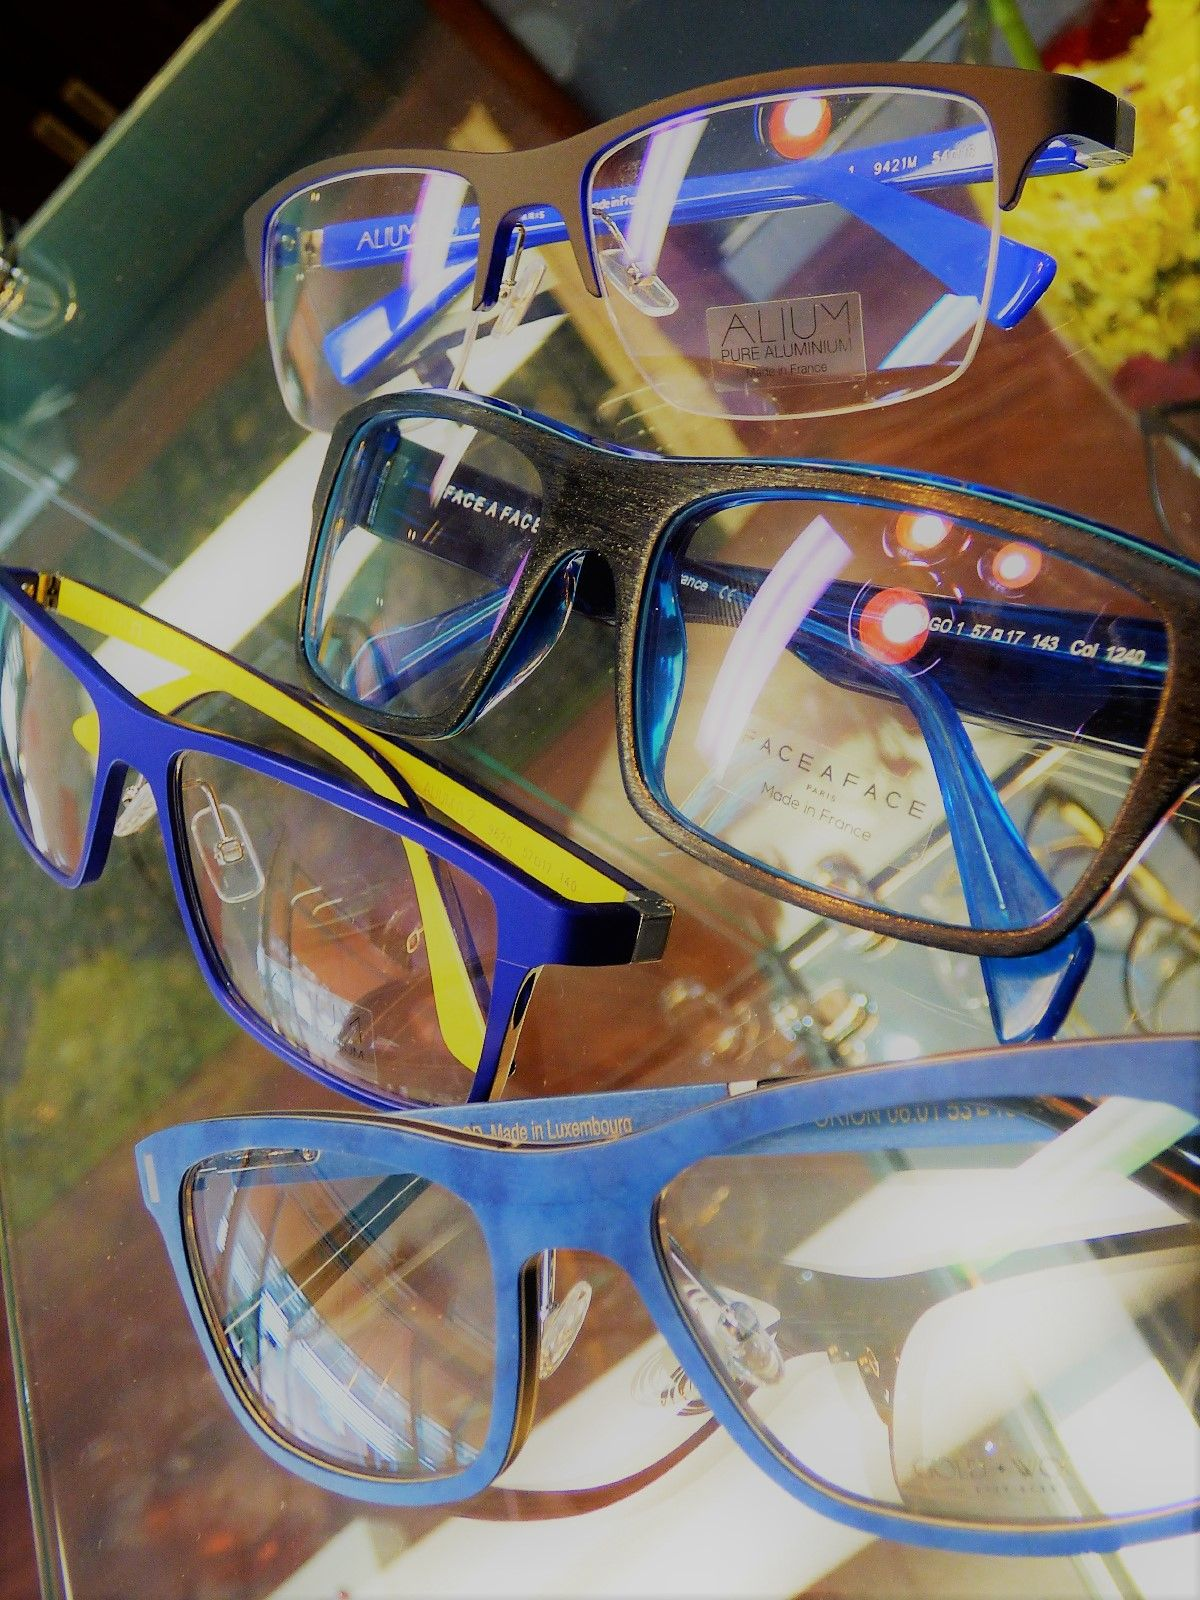 Funky Frame Friday: Beat the winter blues with gorgeous blue frames. Perfect for the office or pair them with denim or chambray for the ultimate in laid-back weekend styling.